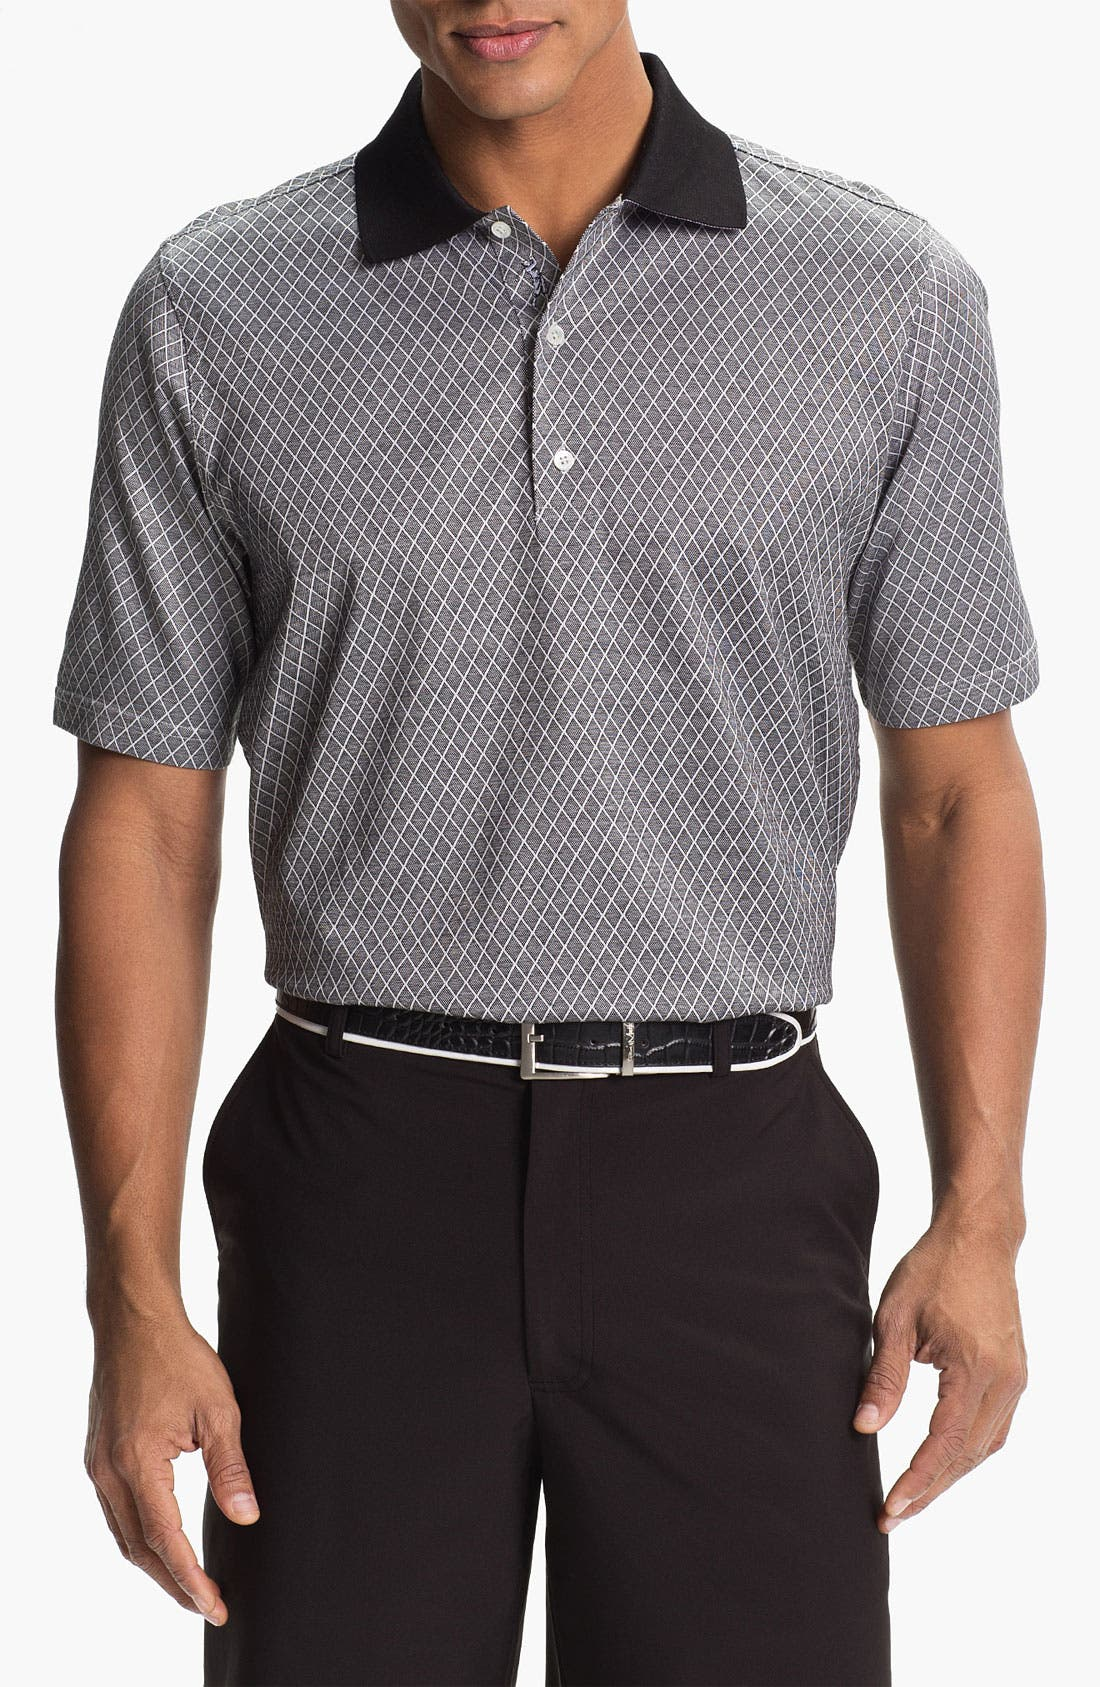 Alternate Image 1 Selected - Bobby Jones Bird's Eye Jacquard Polo